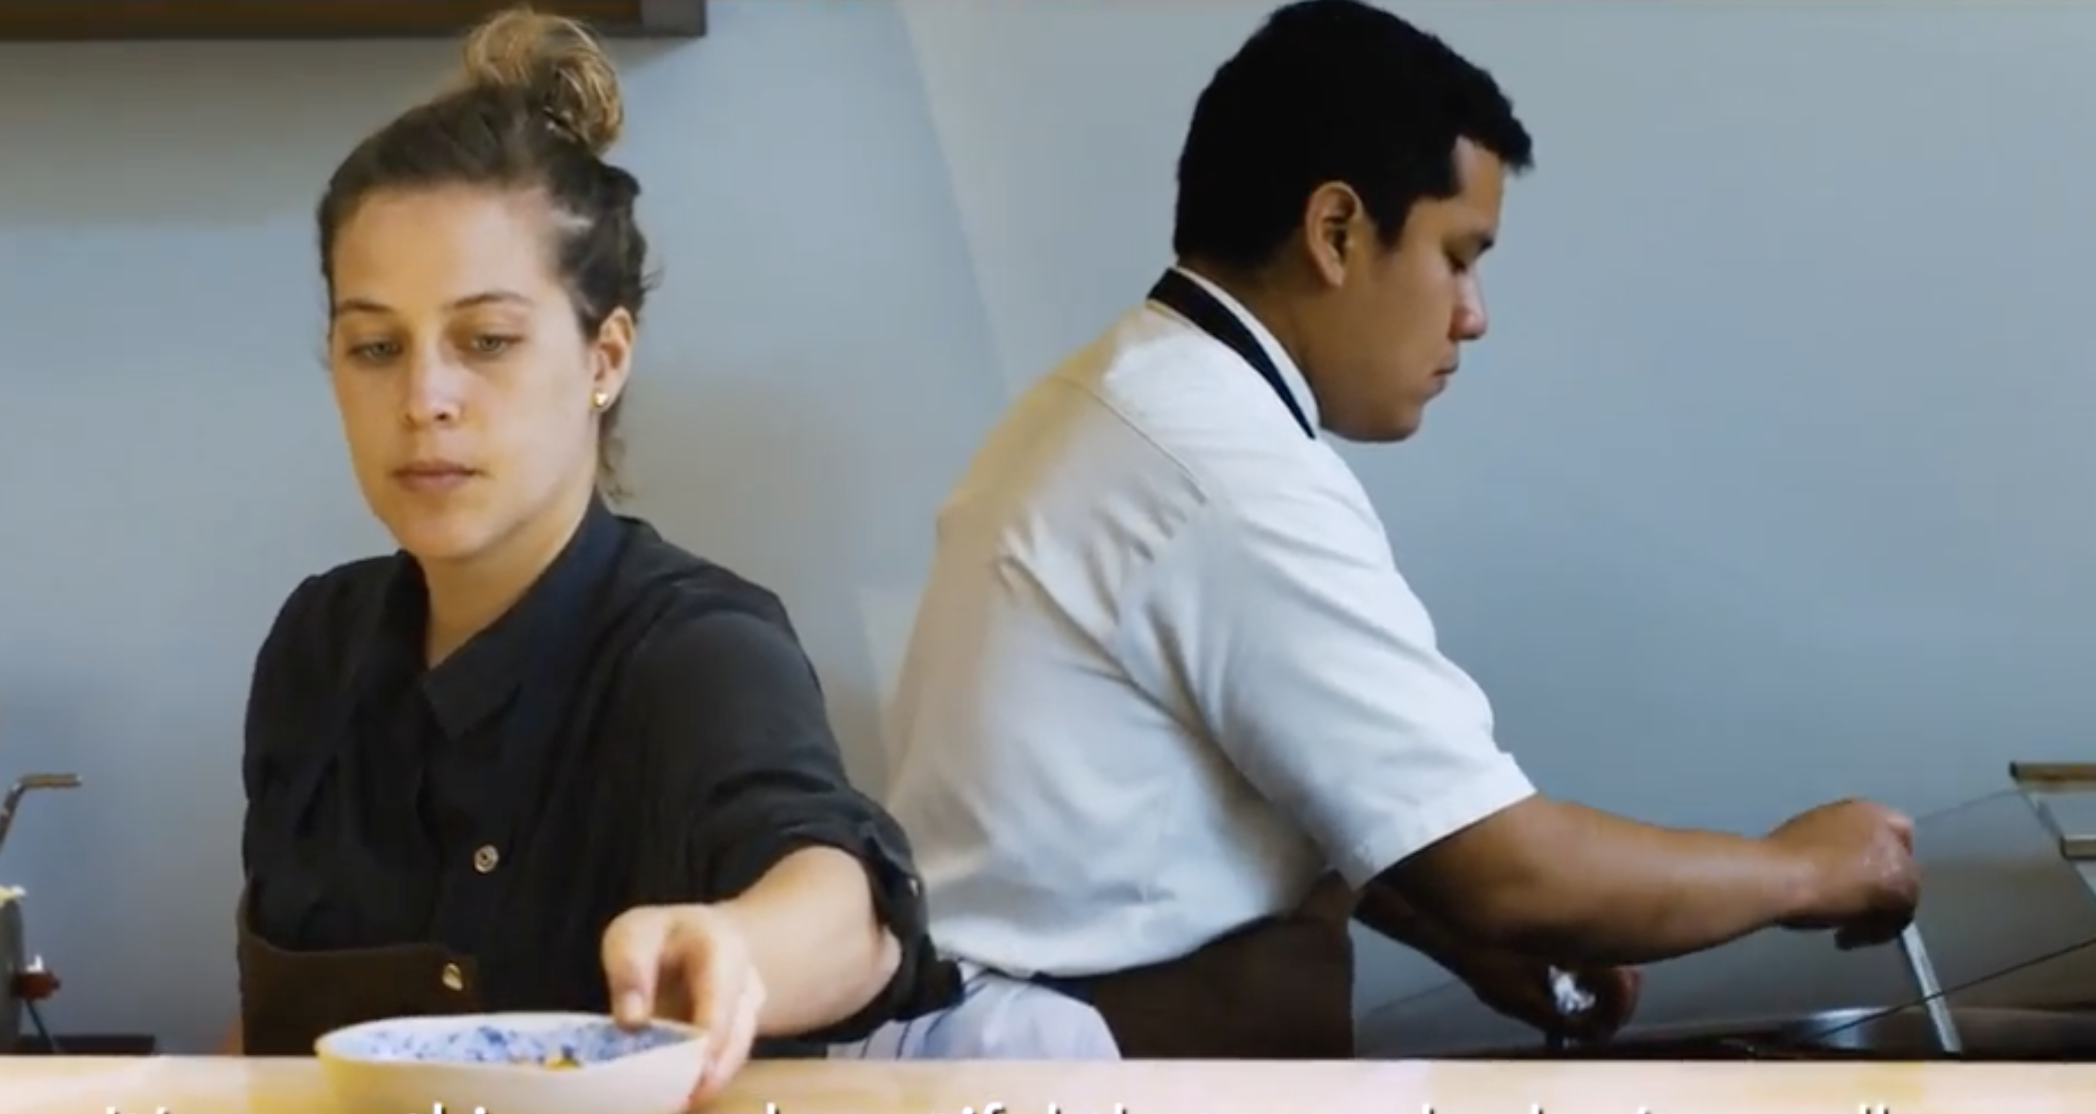 Peru's Pía León named Latin America's 'Best Female Chef'